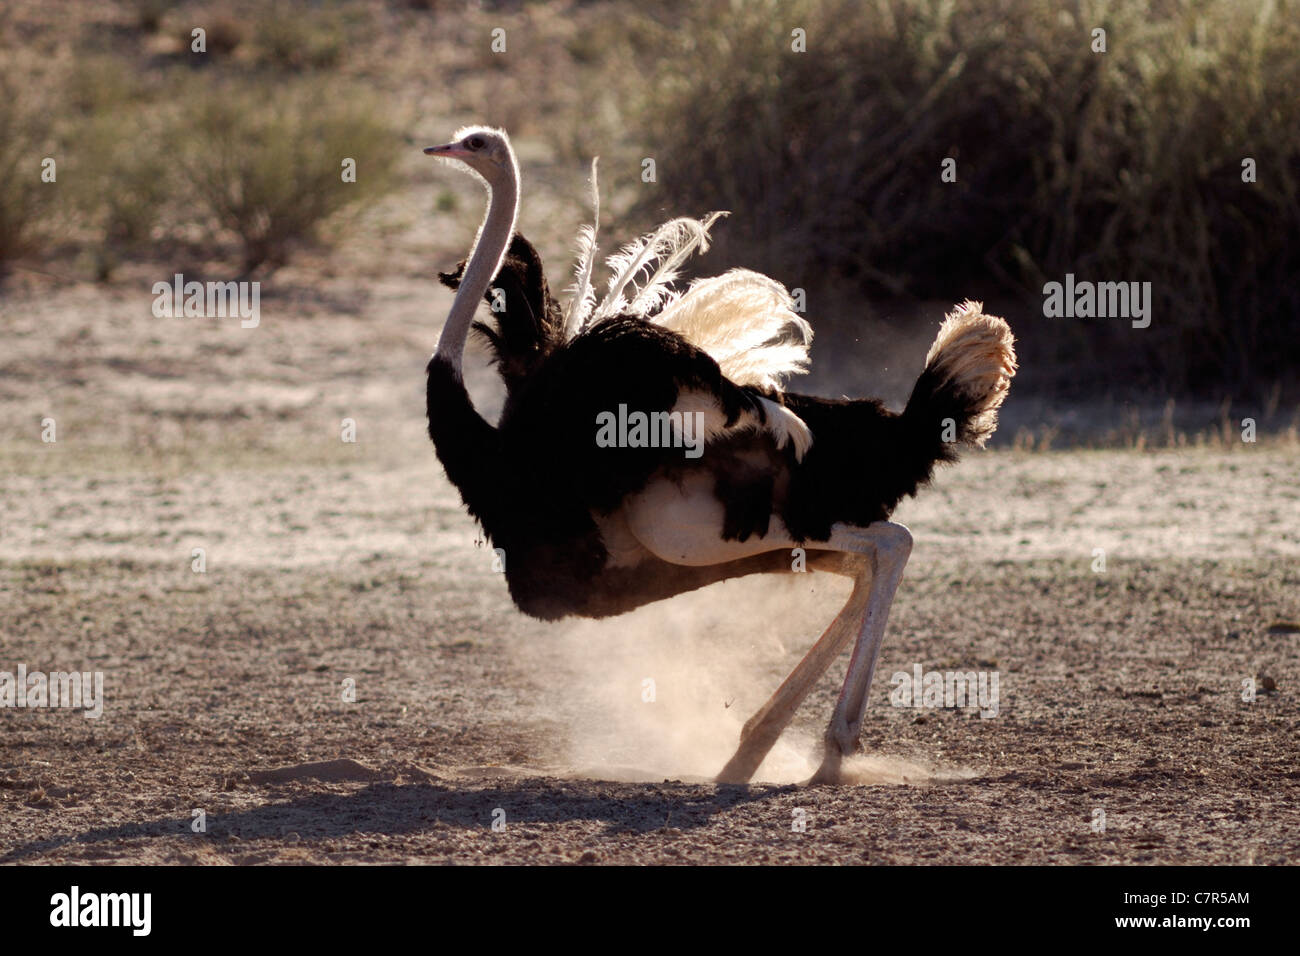 Common ostrich (Struthio camelus), Kgalagadi Transfrontier Park, South Africa - Stock Image